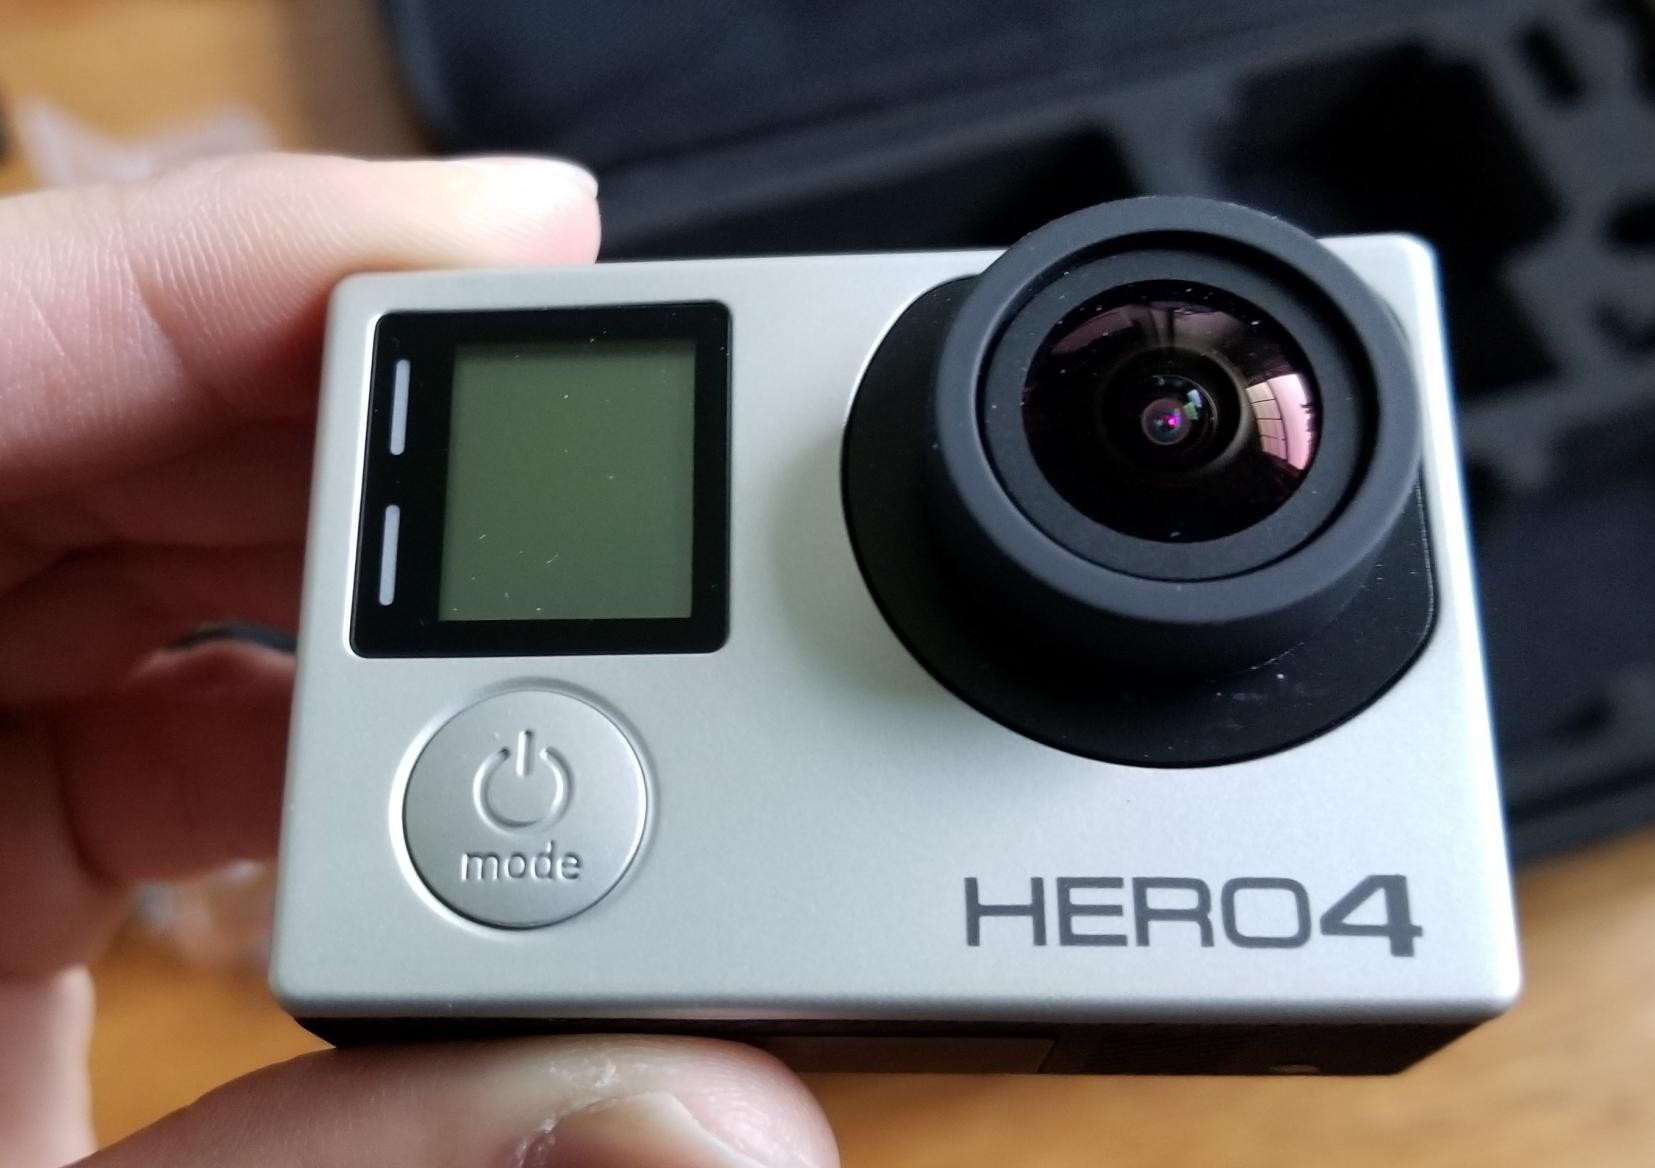 FS: GoPro Hero 4 Silver, SF bay area, 0-20190414_174349-2-jpg